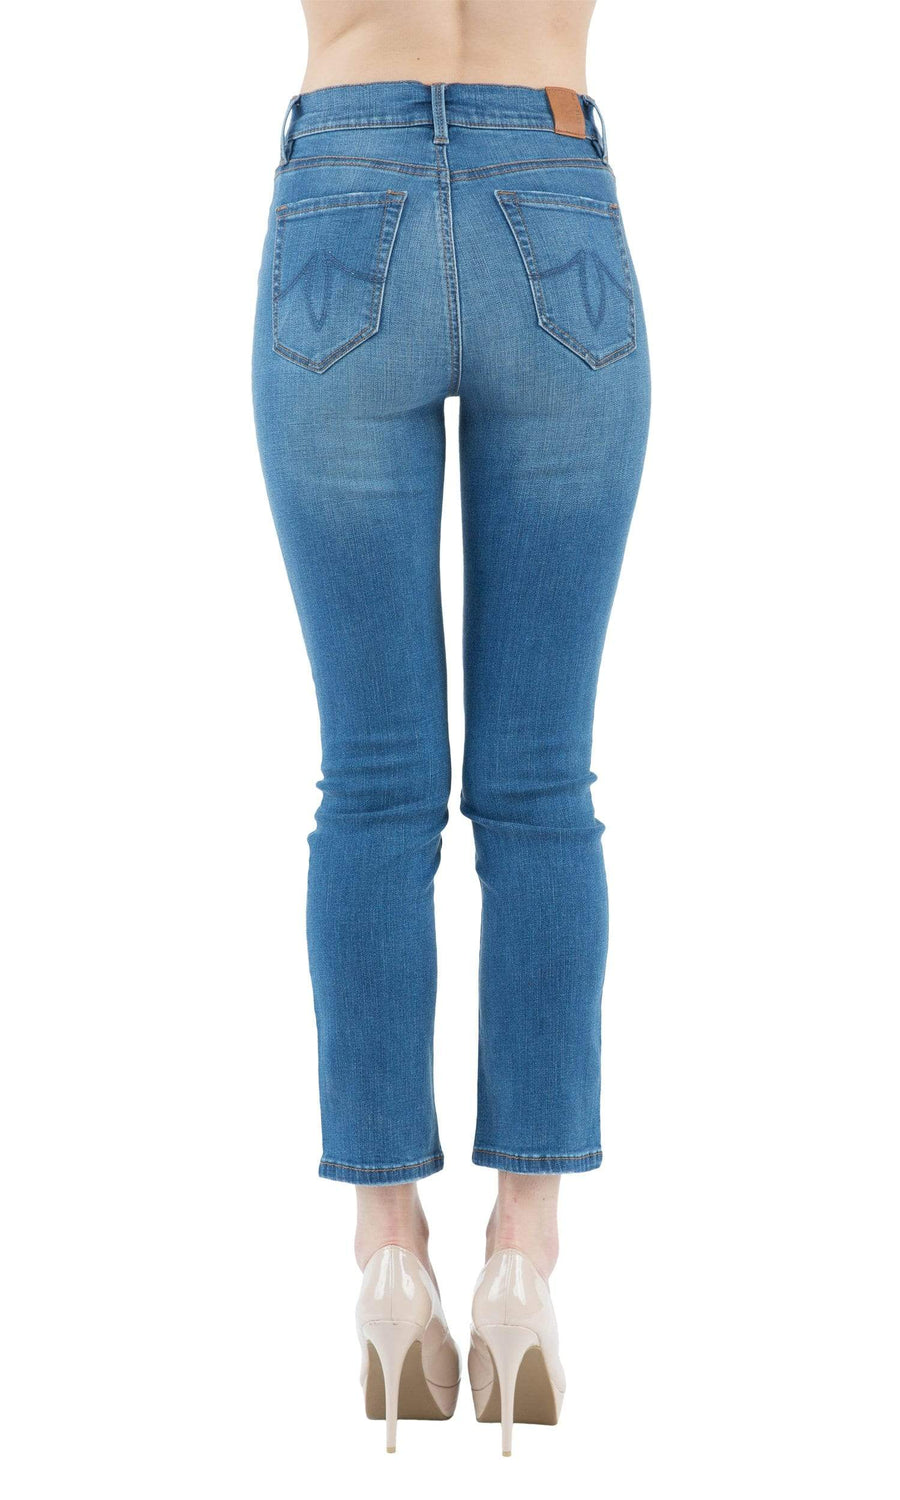 Level 99 Riley High Rise Button Fly Straight Leg Denim